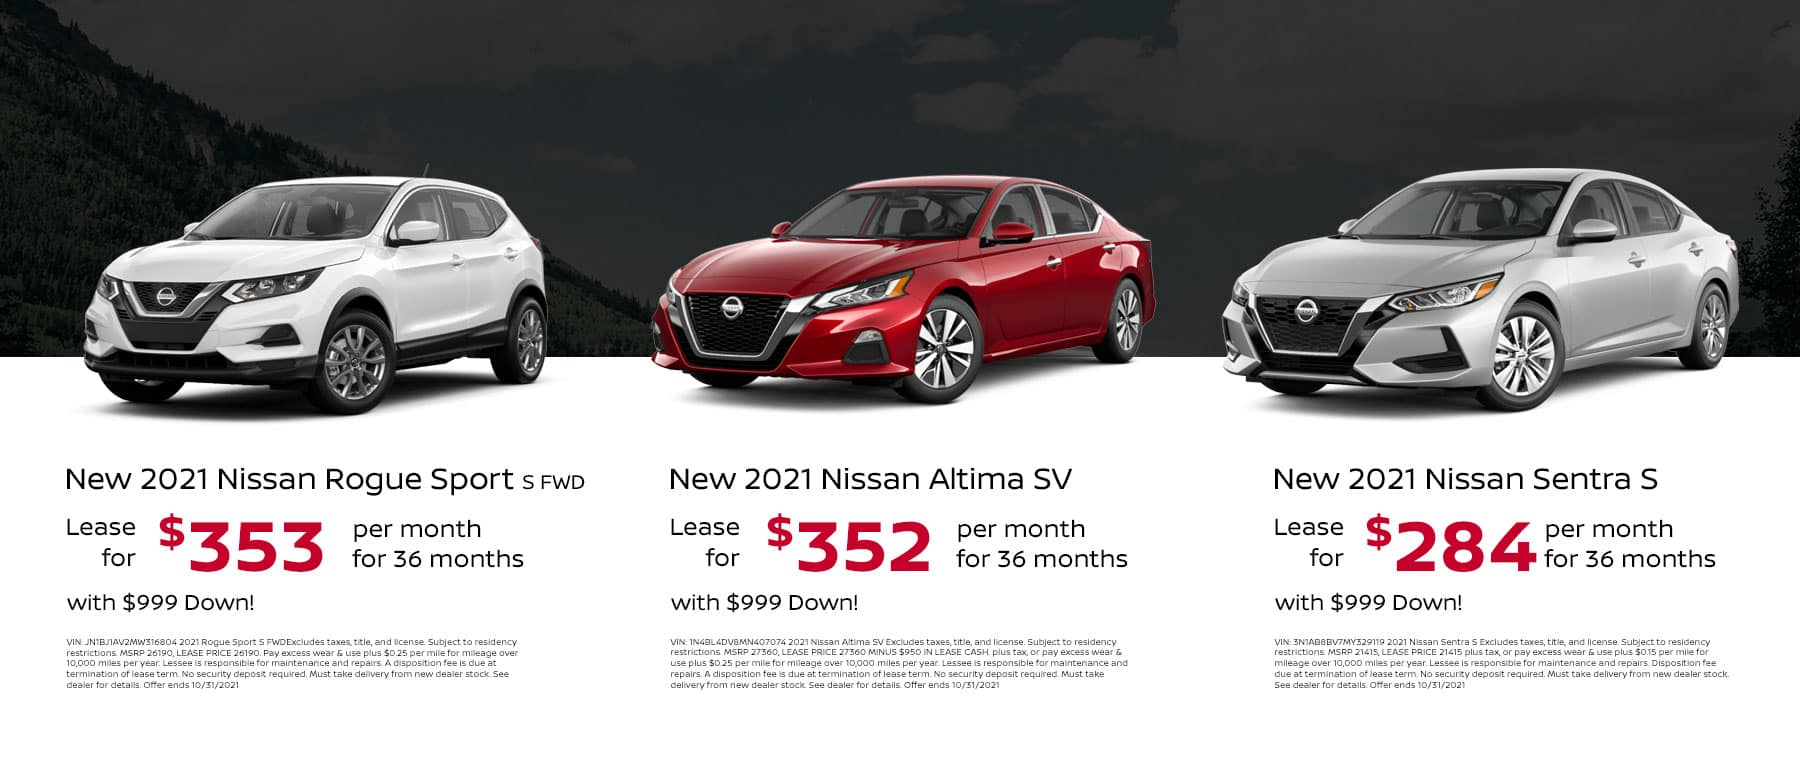 Lease a New 2021 Nissan Sentra S for $284/mo for 36mos with $999 Down!